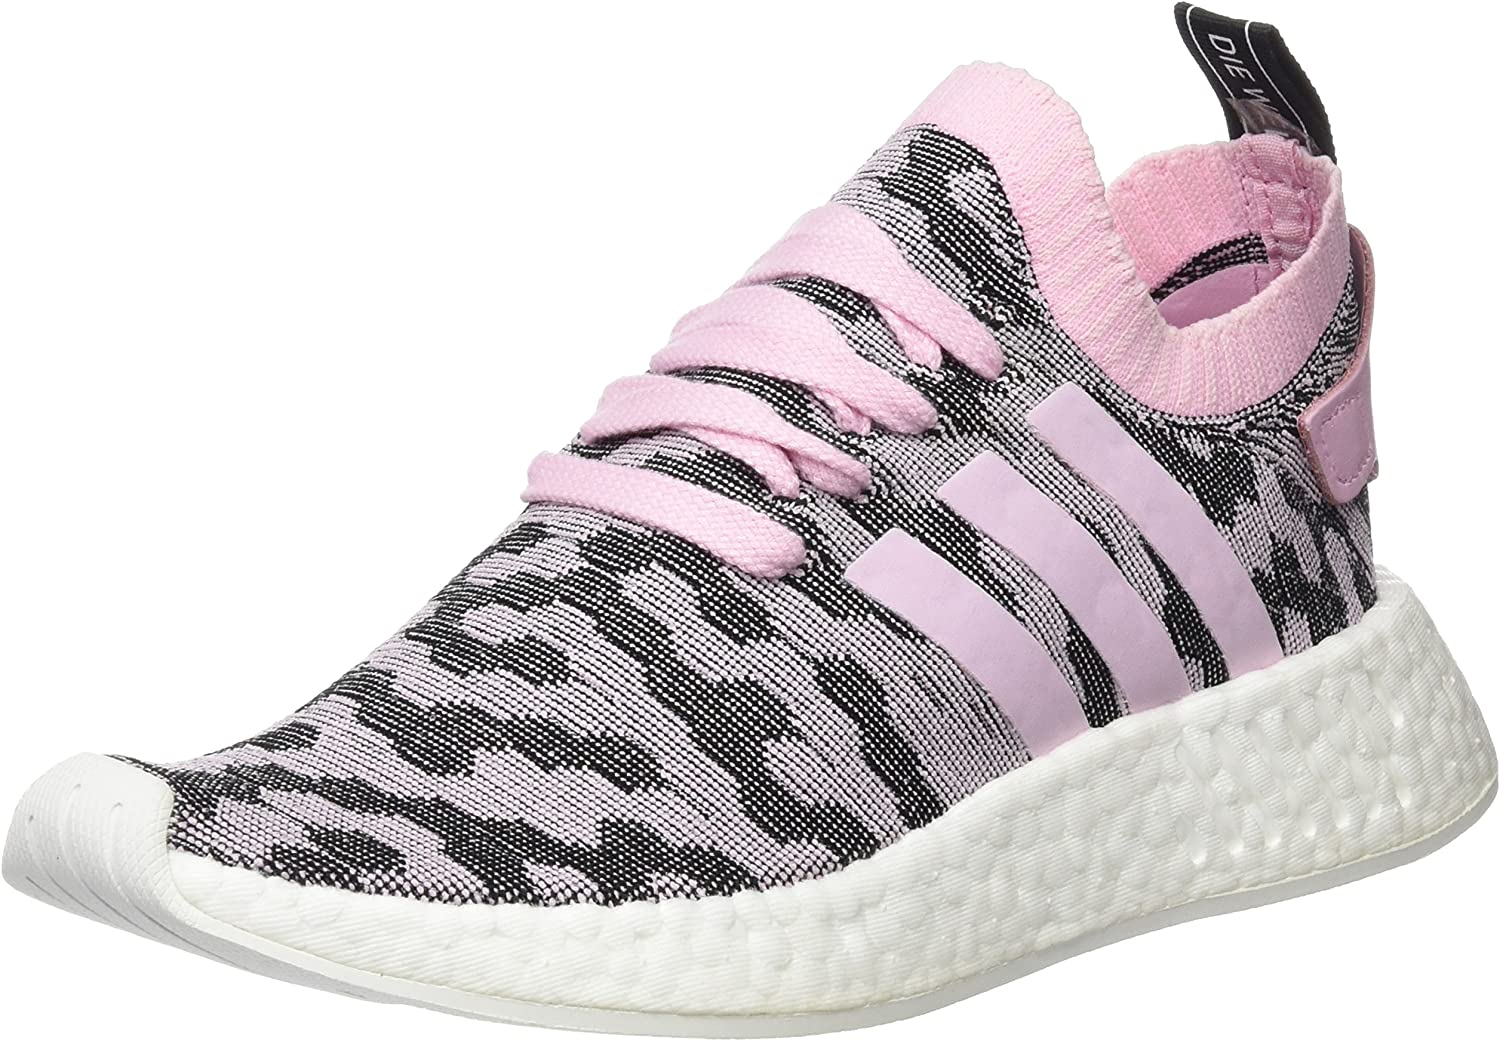 Adidas Womens NMD R2 Primeknit Textile Trainers